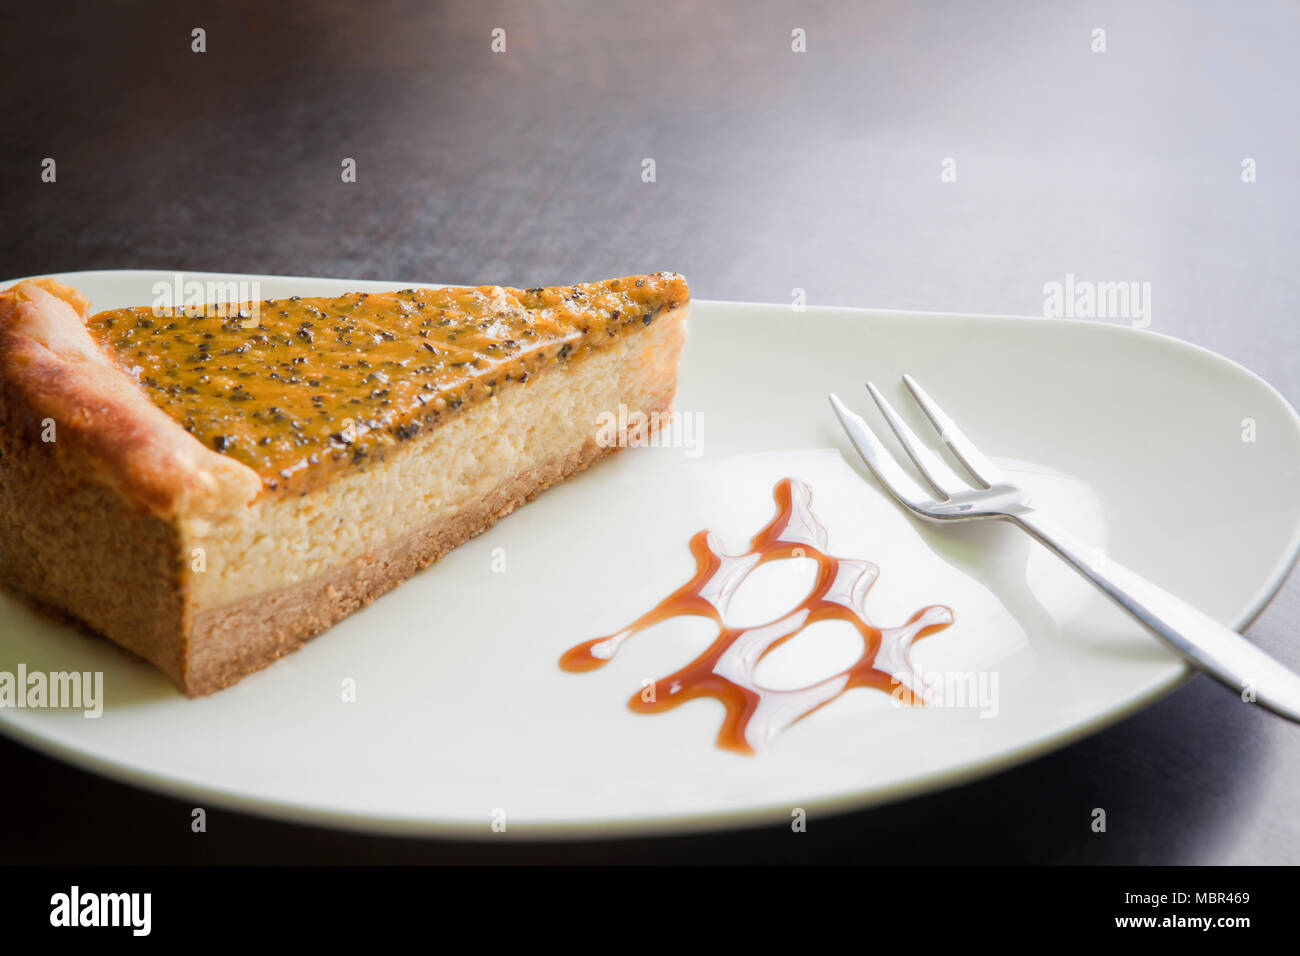 Slice of Maracuja Cheesecake on a white plate; Close up - Stock Image